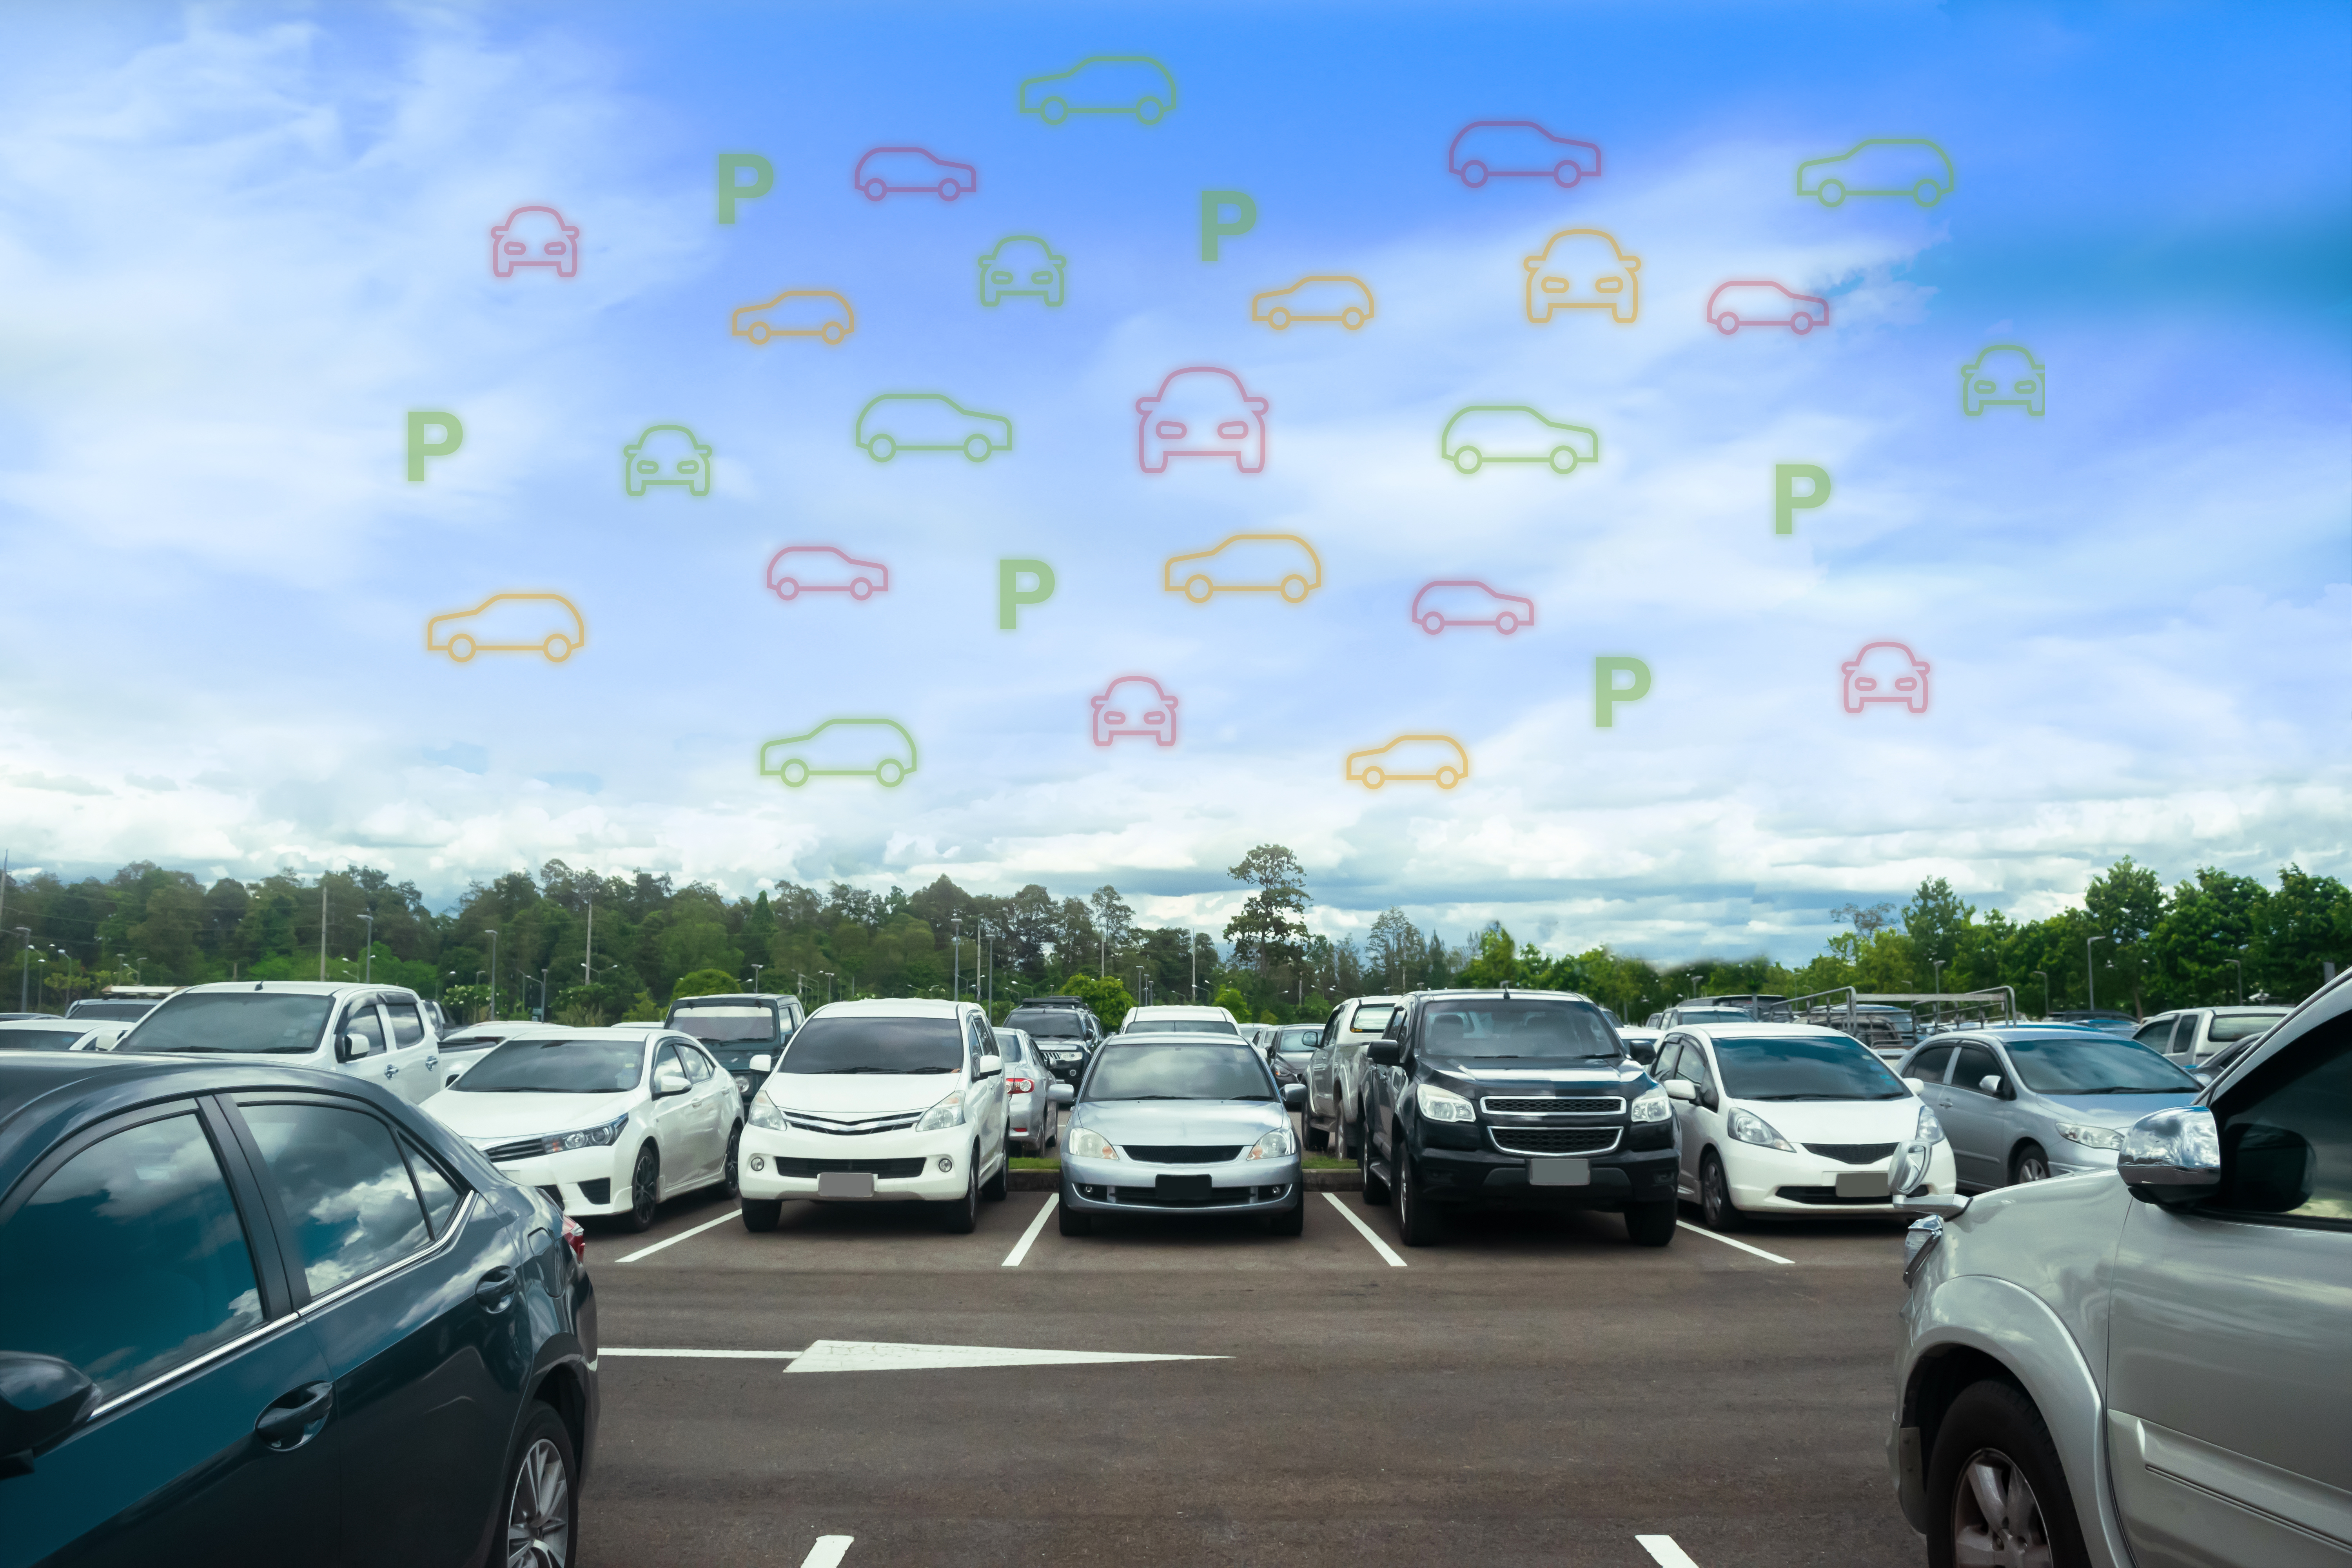 142884_USECASE_Intelligent Insights-Occupancy_Counting_Parking_6-7_42510 (1)